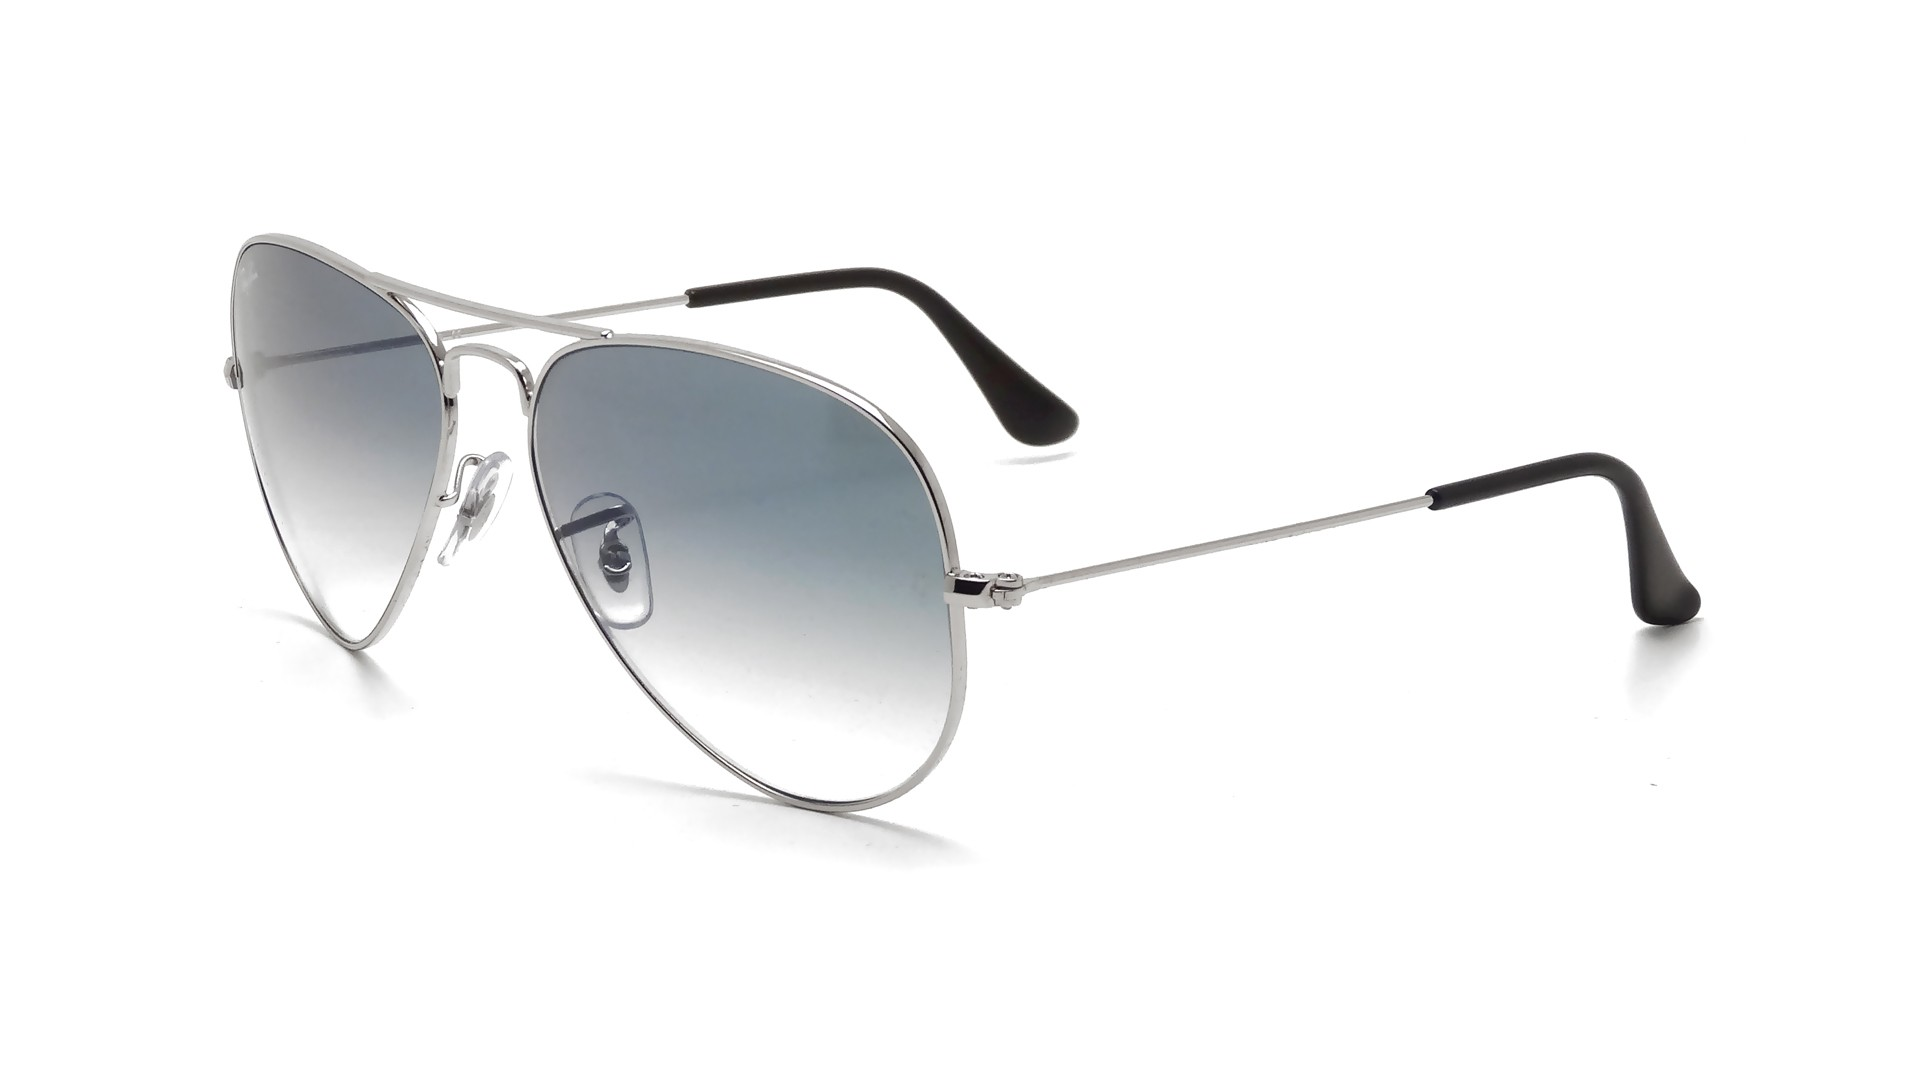 Sunglasses Ray-Ban Aviator Large Metal Silver RB3025 003 3F 62-14 Large  Gradient 5135013ac3